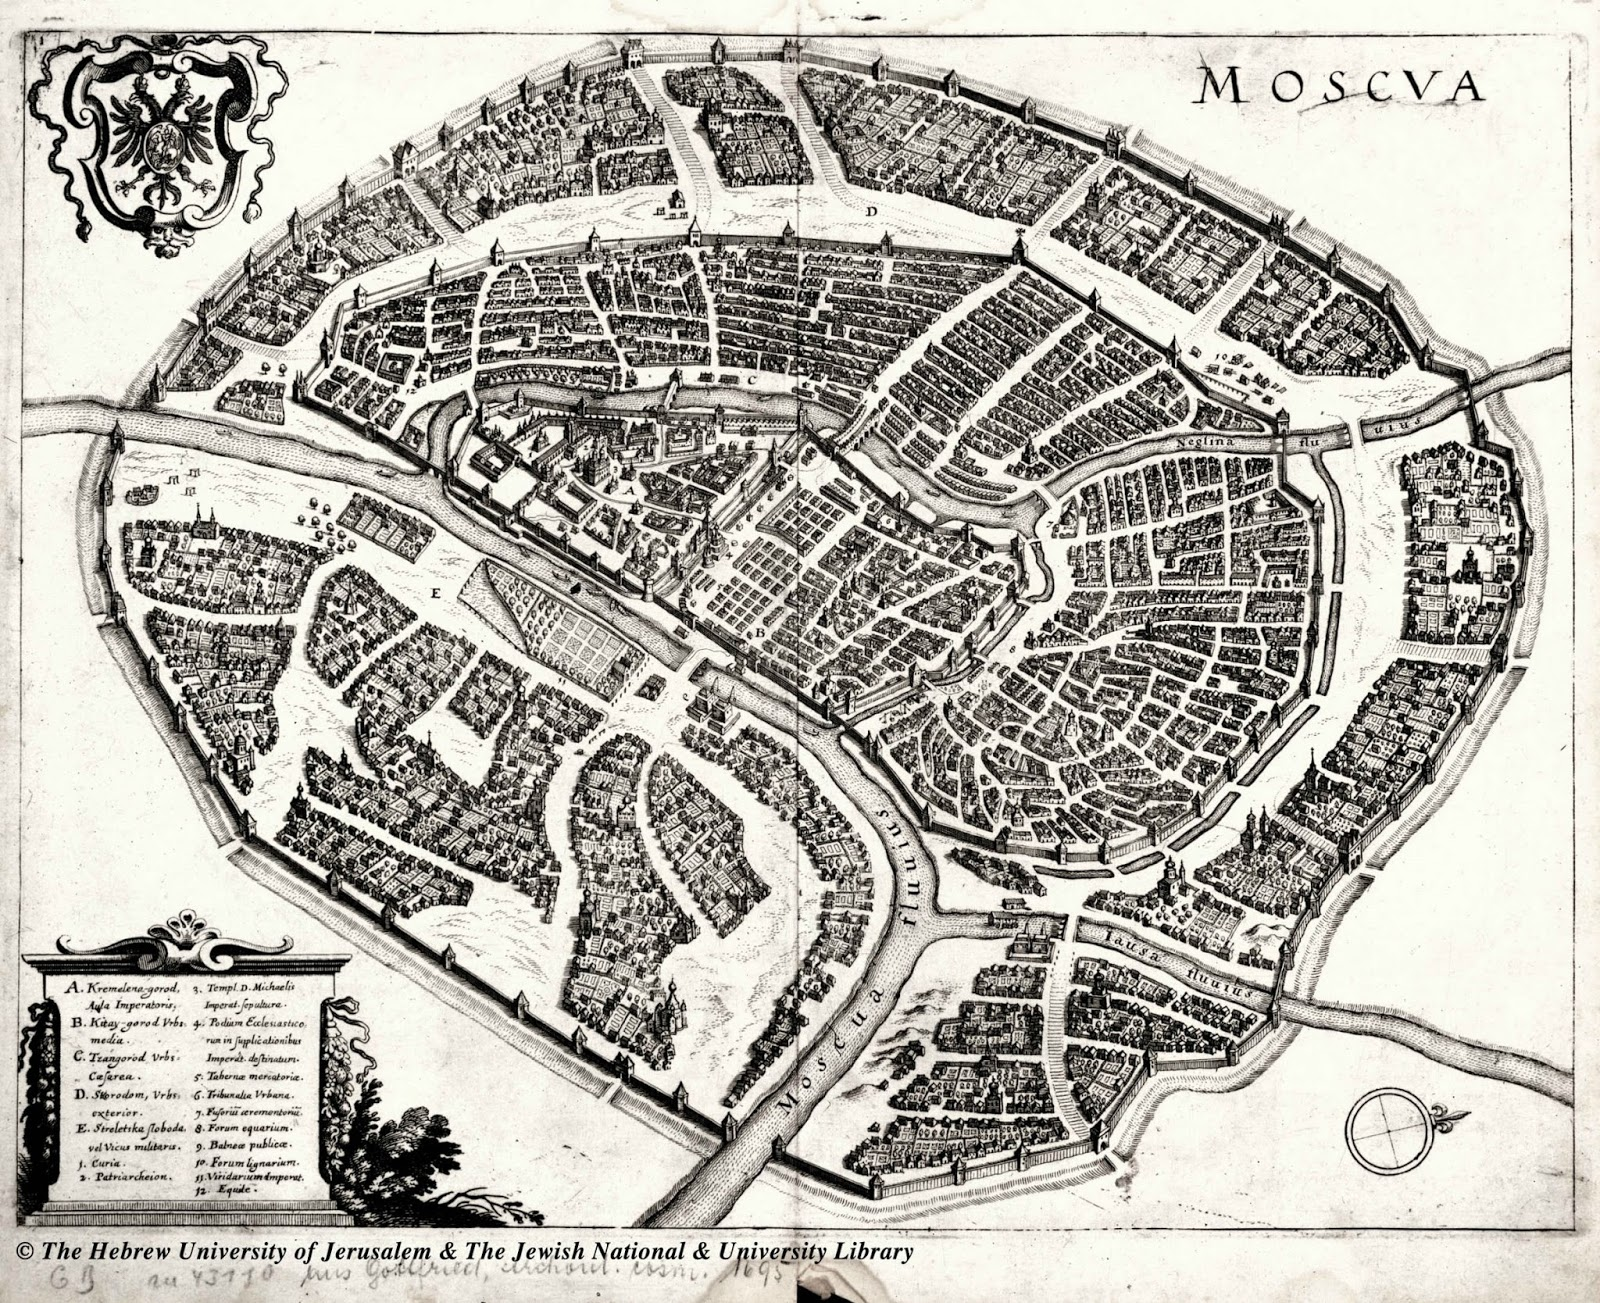 Moscow (1695)